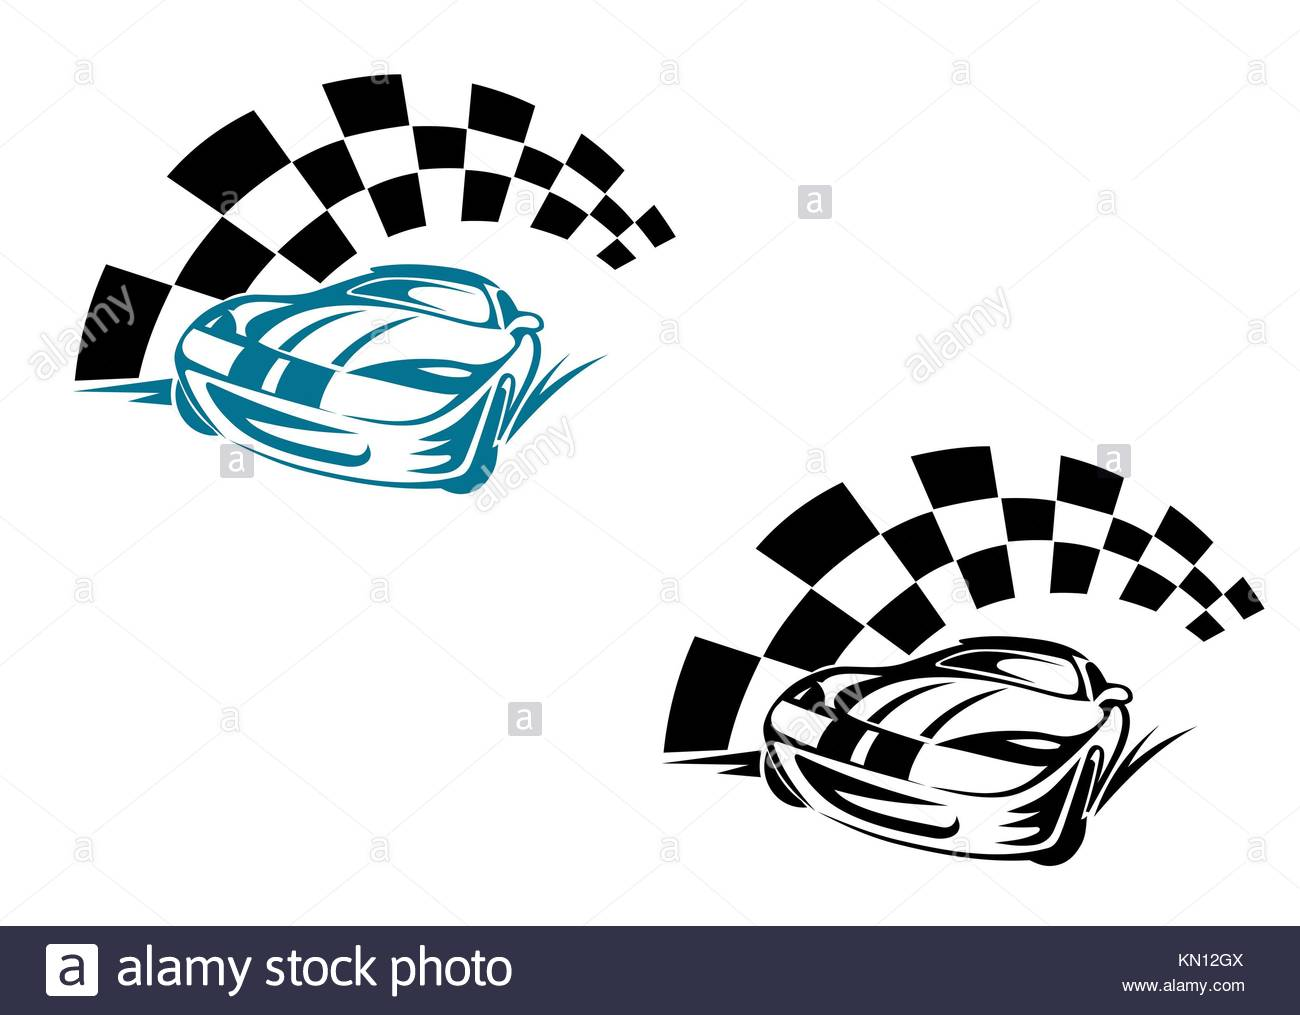 Rally cars cut out stock images pictures alamy racing cars and symbols for sports or tattoo design stock image biocorpaavc